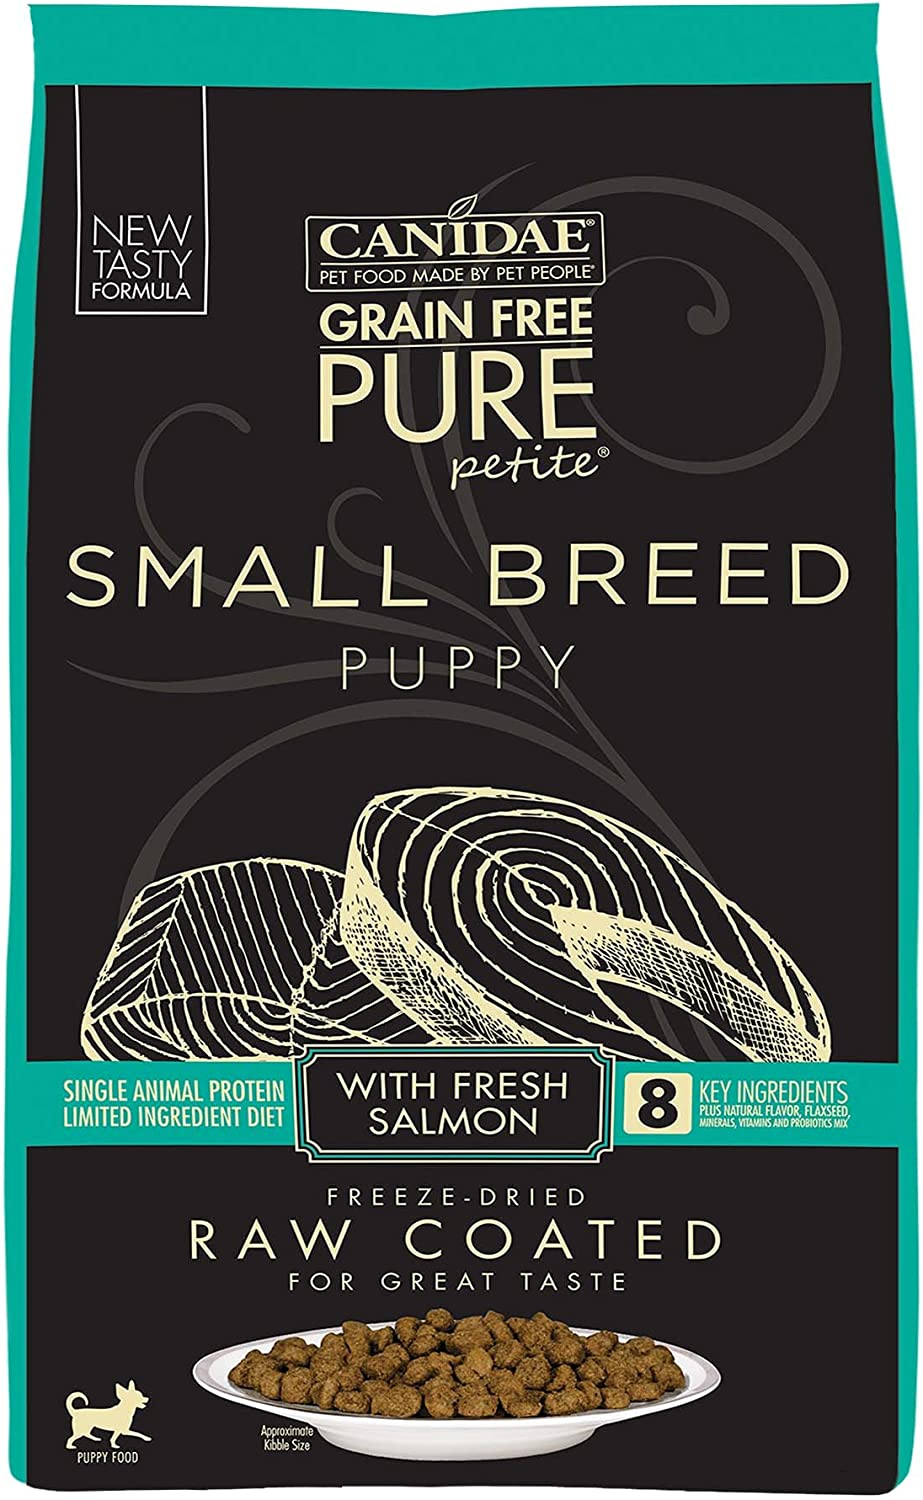 Canidae Pure Petite Raw Coated Puppy Salmon 10Lb